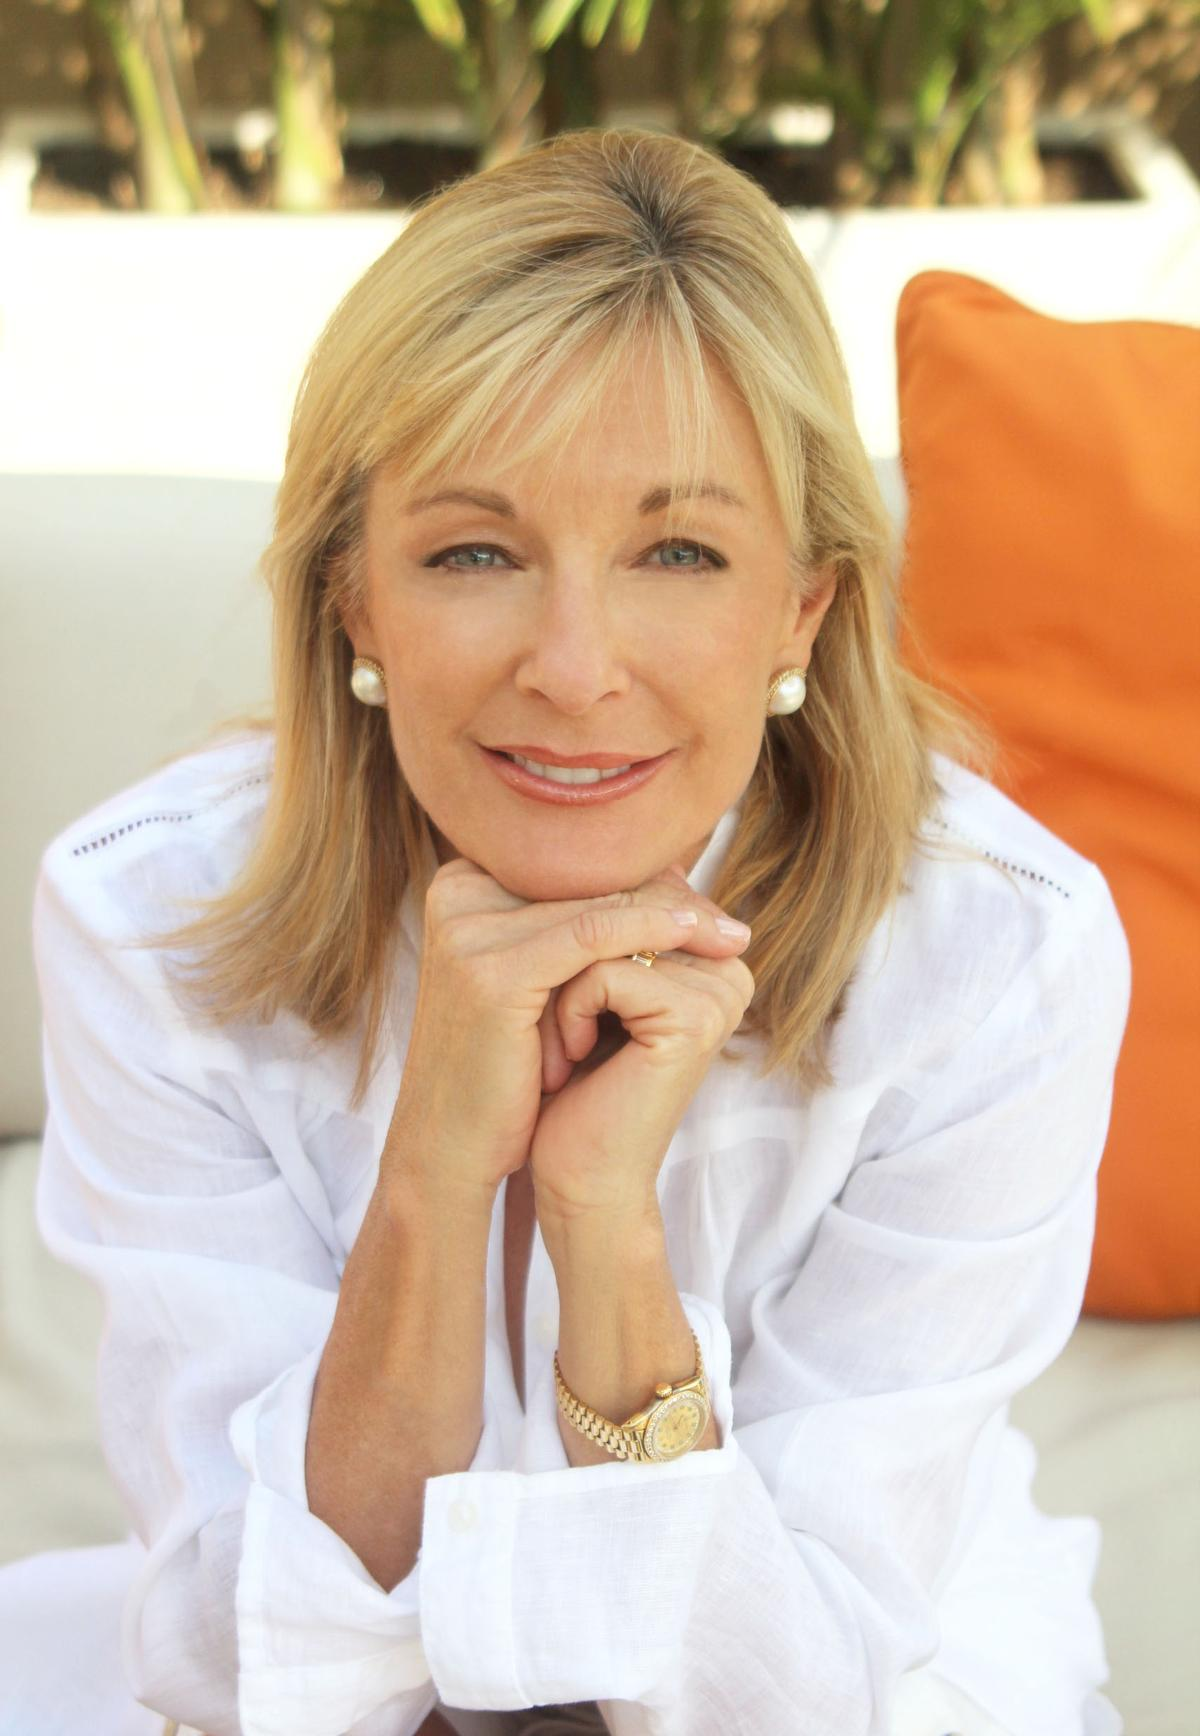 Susie Ellis Chairman and CEO of The Global Wellness Summit / Club Wellness Institute